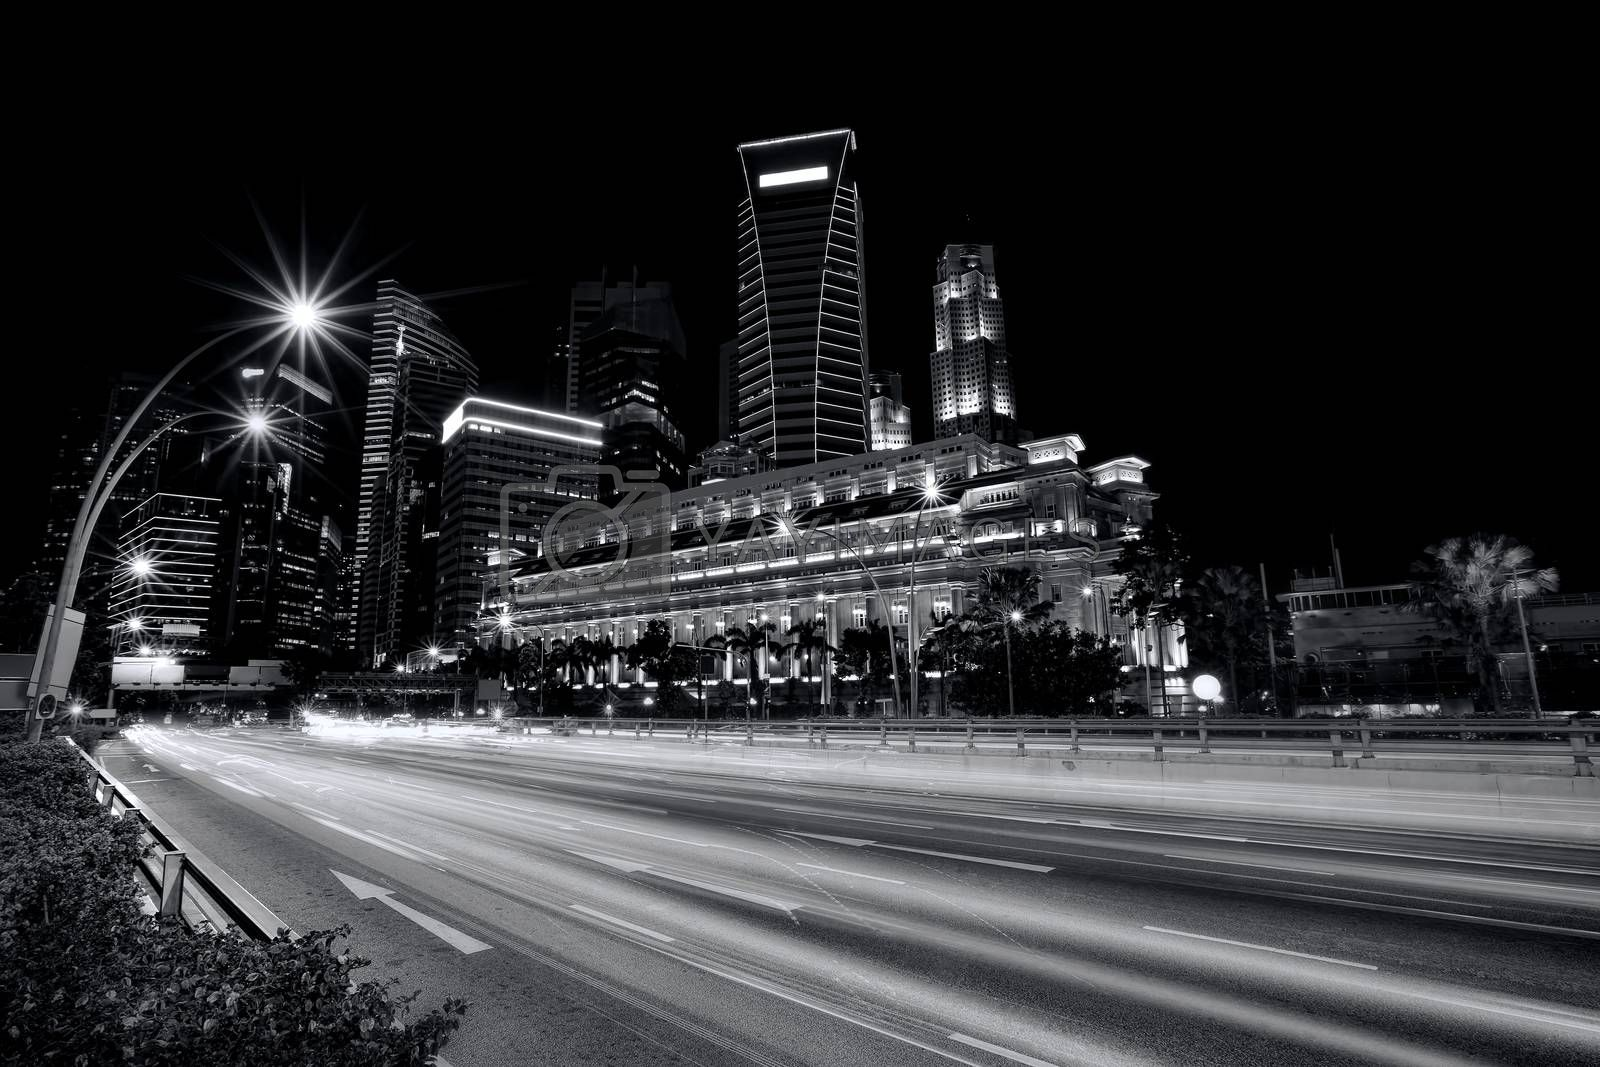 Light trails in the financial district of Singapore